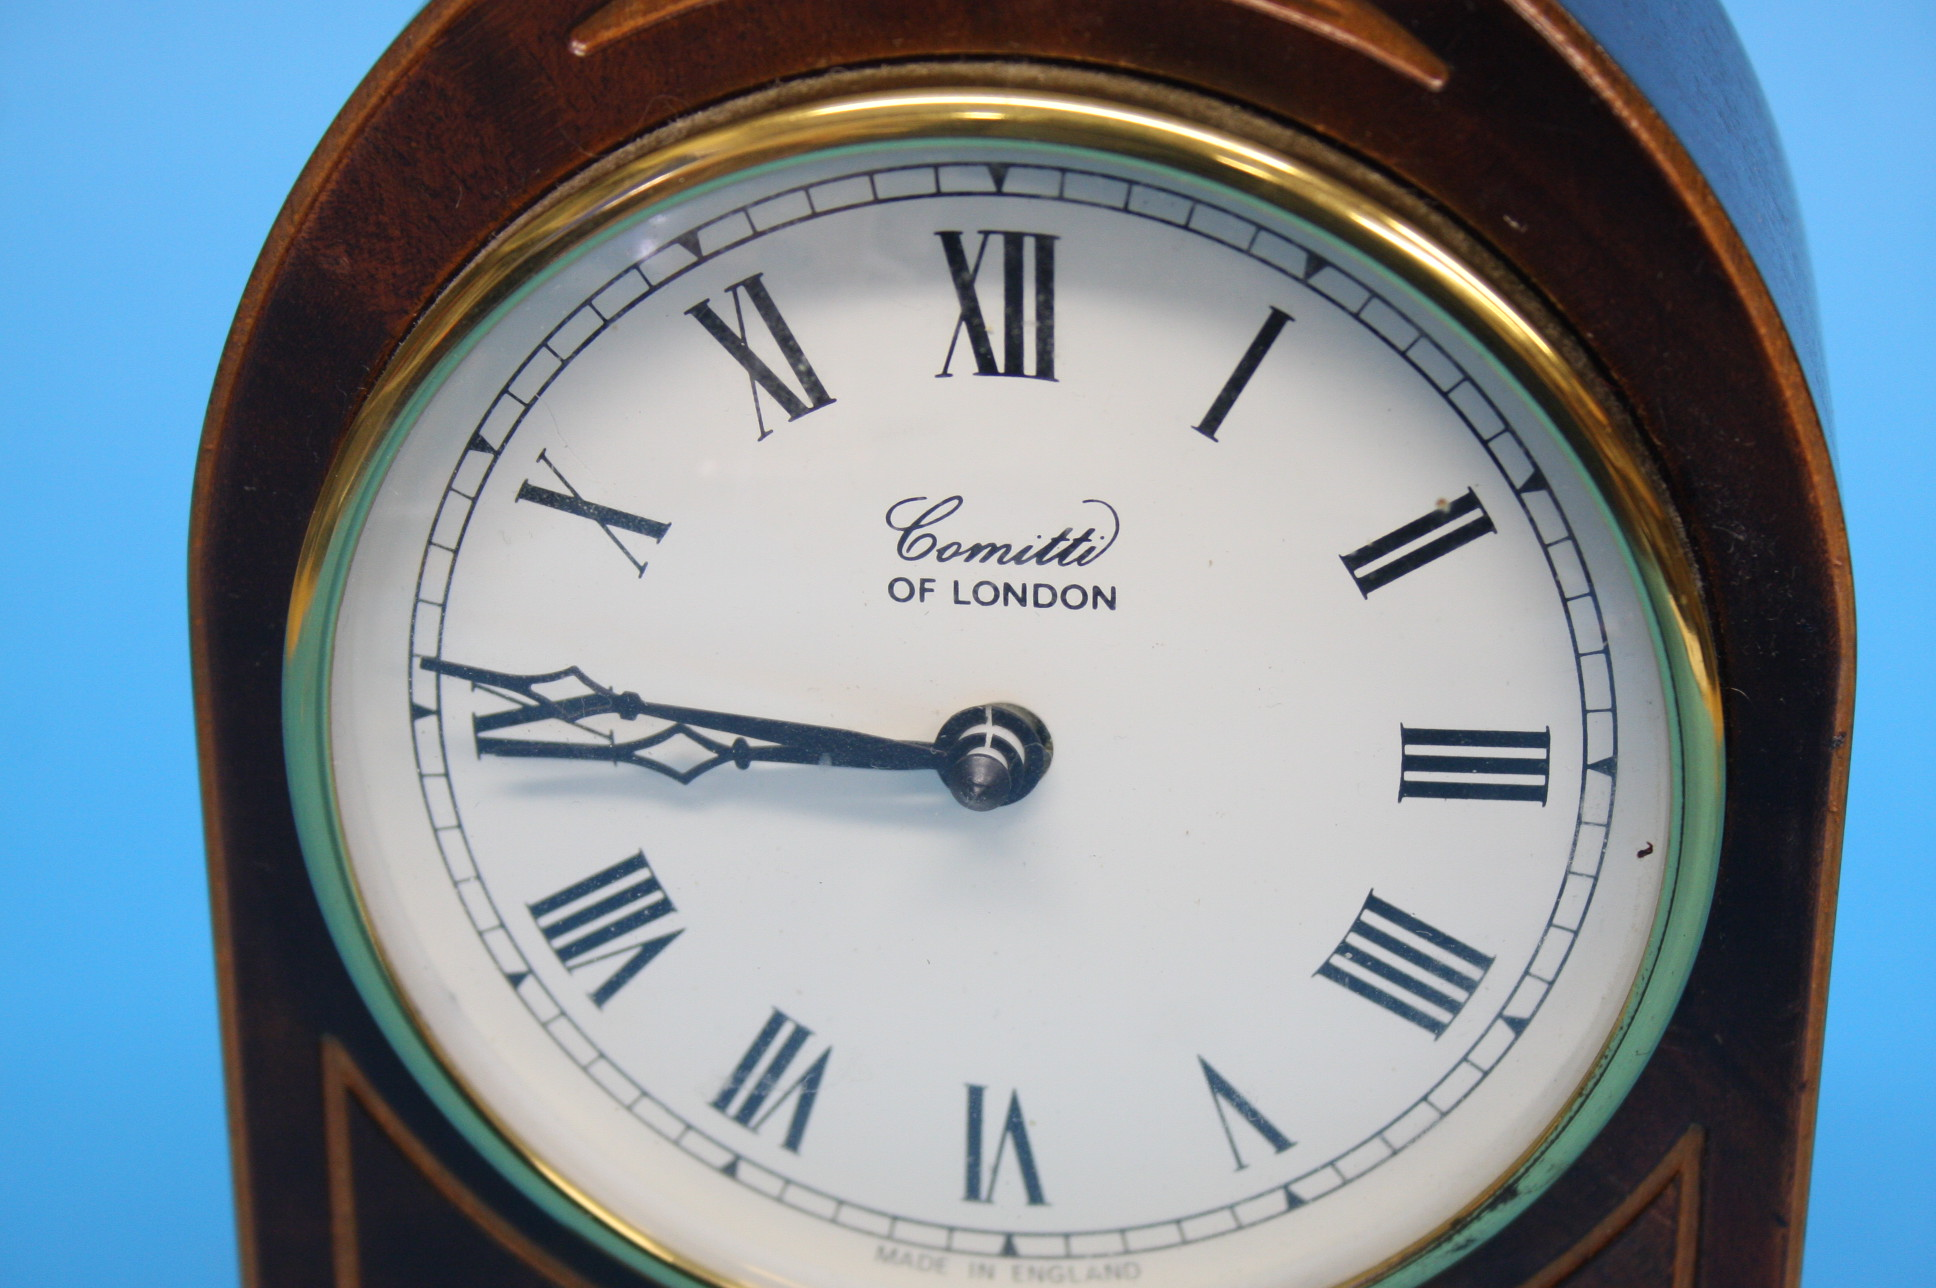 A Comitti of London mantel clock (battery operated - Image 2 of 3